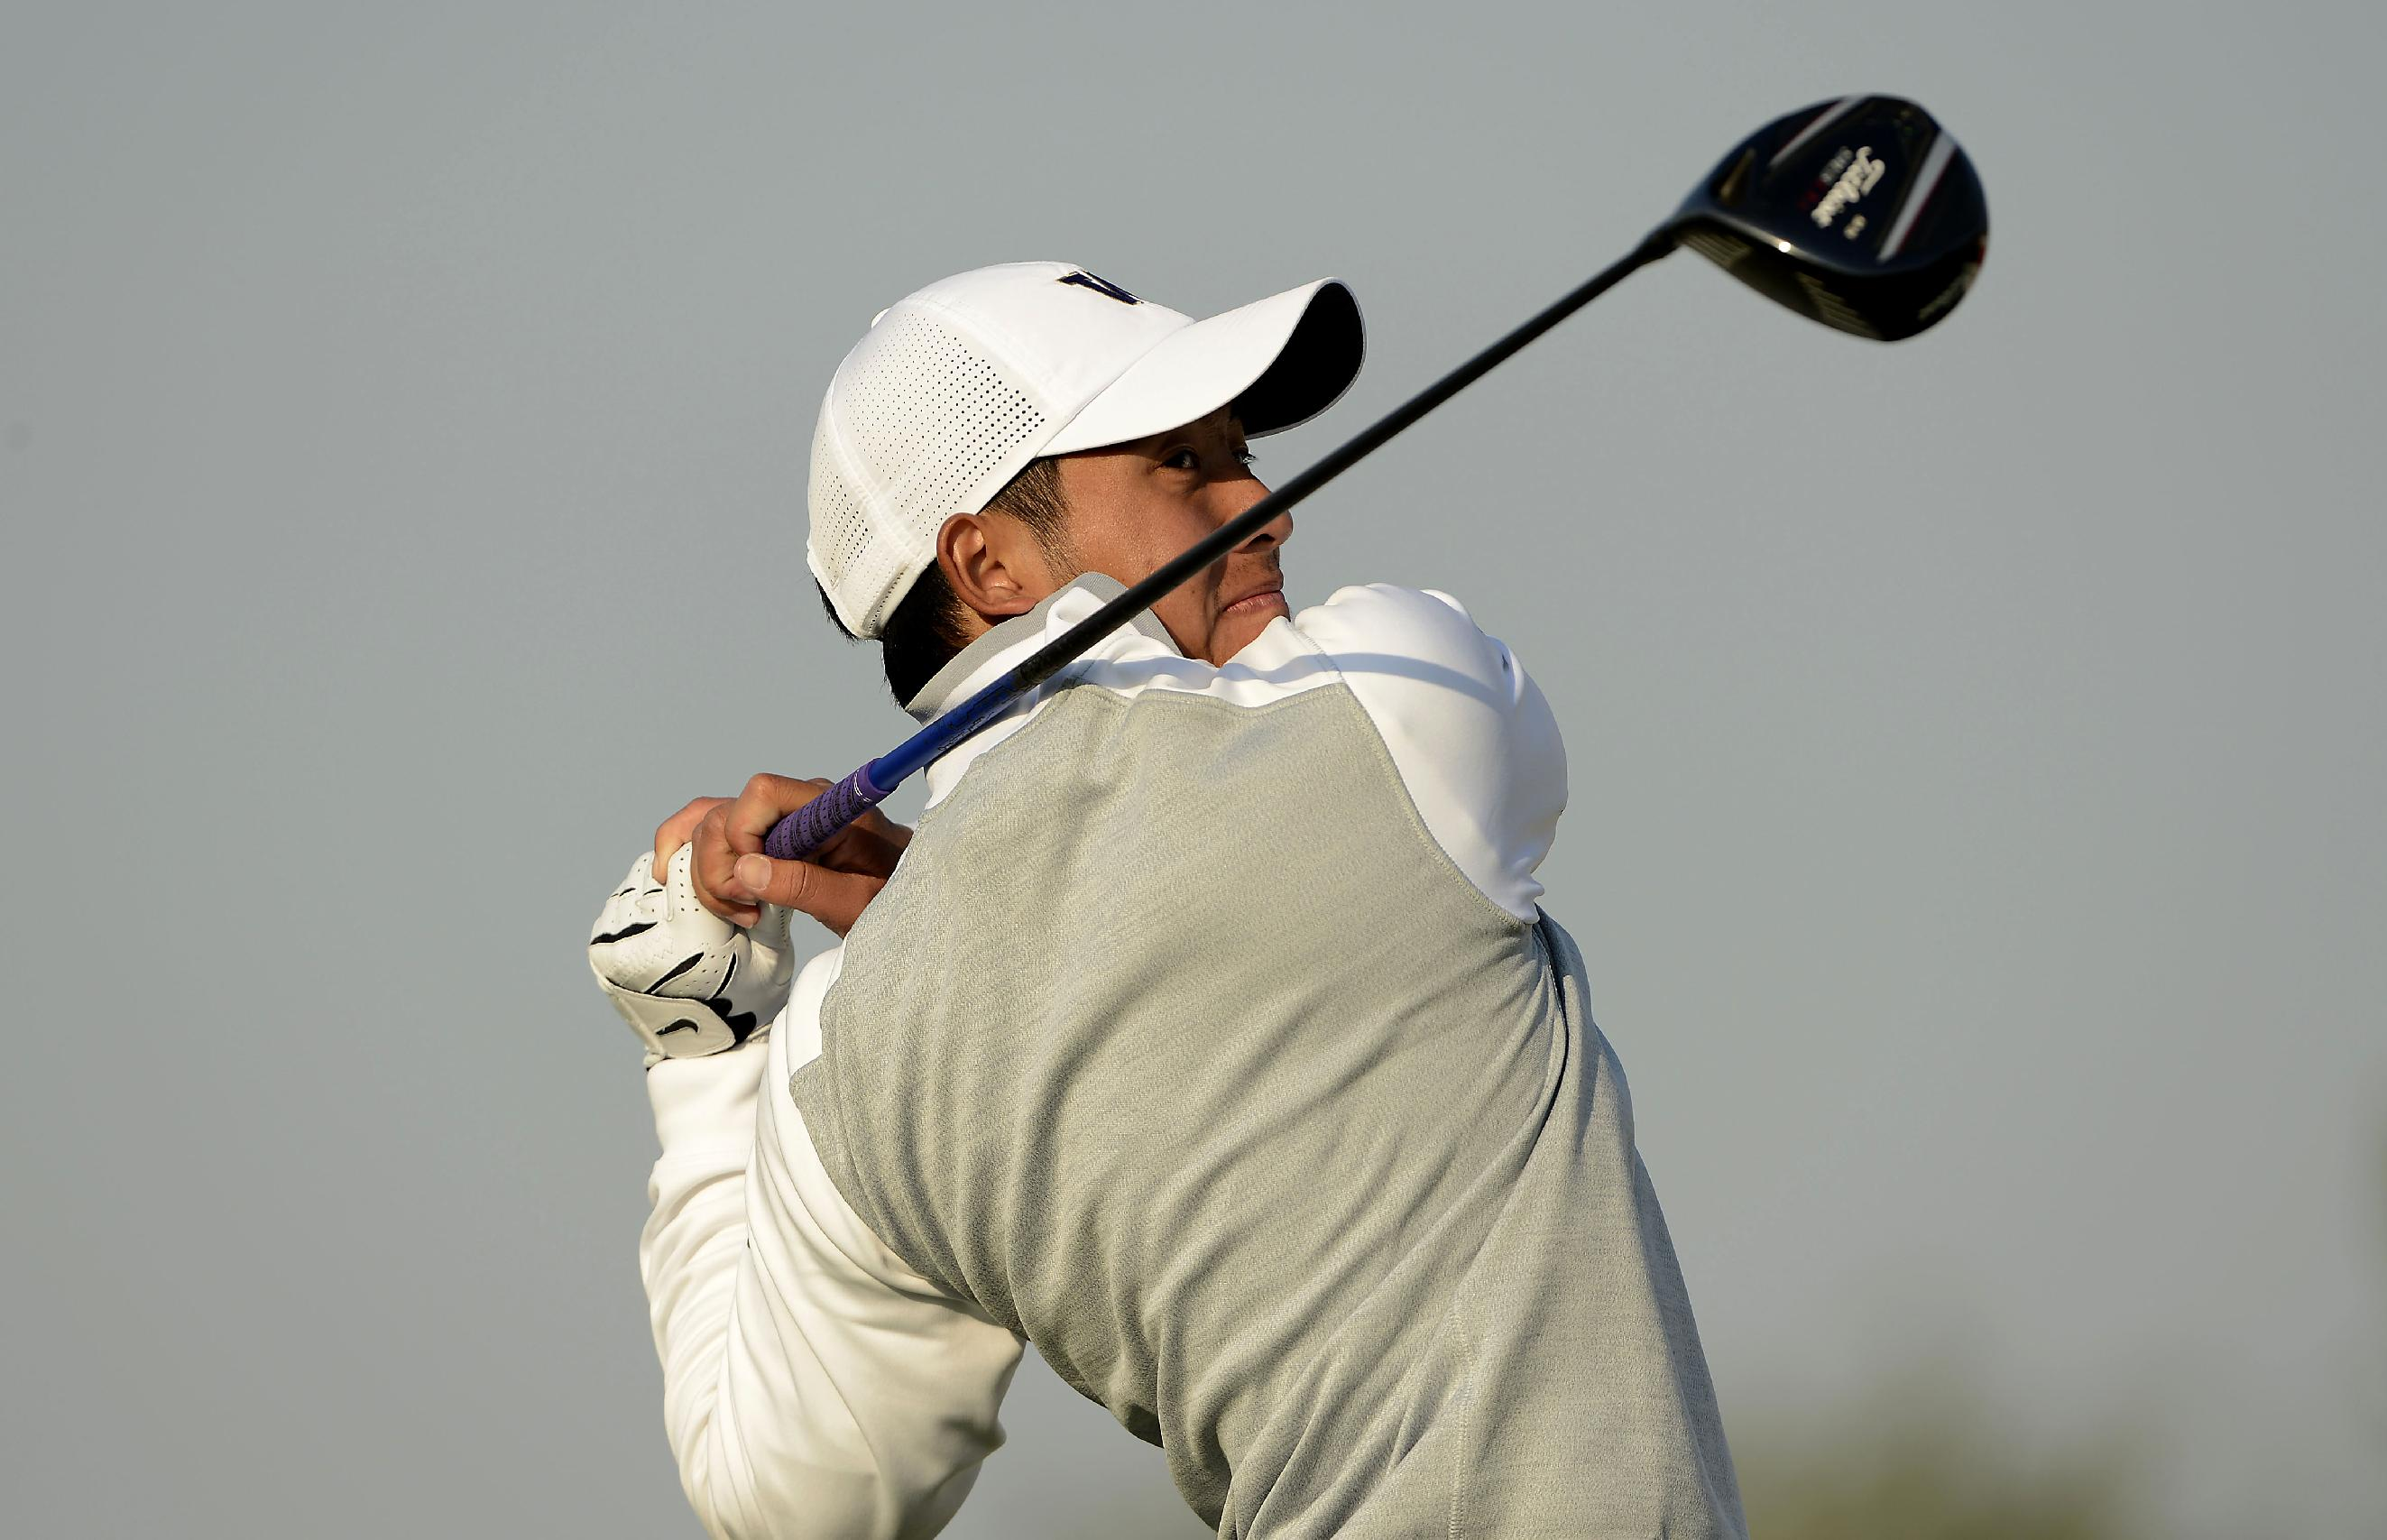 In this photo released by the Asia -Pacific Amateur Championship, Taiwan's Pan Cheng-tsung watches his shot during round one of the Asia -Pacific Amateur Championship golf tournament at Nanshan International Golf Club, Garden Course, in Longkou City, China on Thursday, Oct. 24, 2013